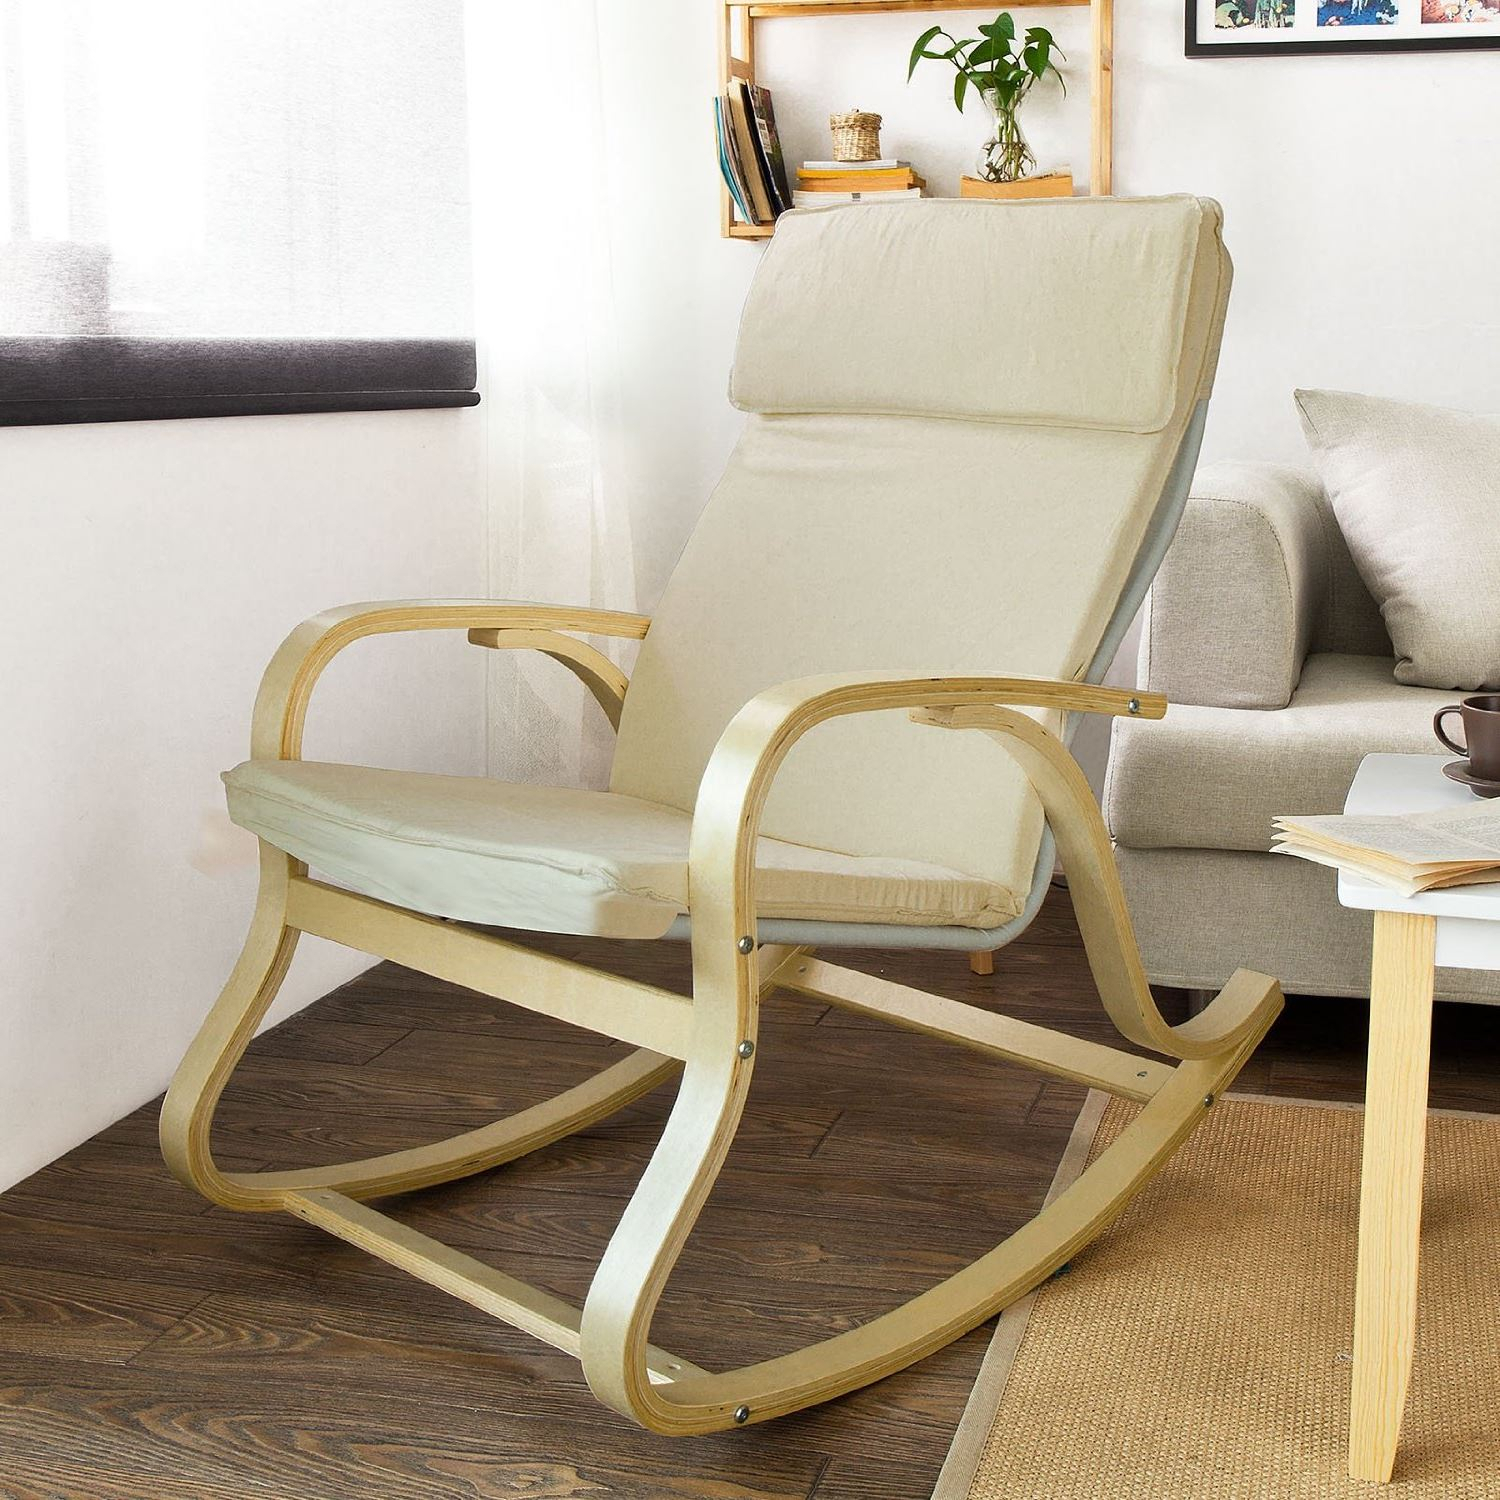 Bedroom: Enjoying Rocking Chair Furniture Completed With For Wooden Rocking Chairs With Fabric Upholstered Cushions, White (View 4 of 20)